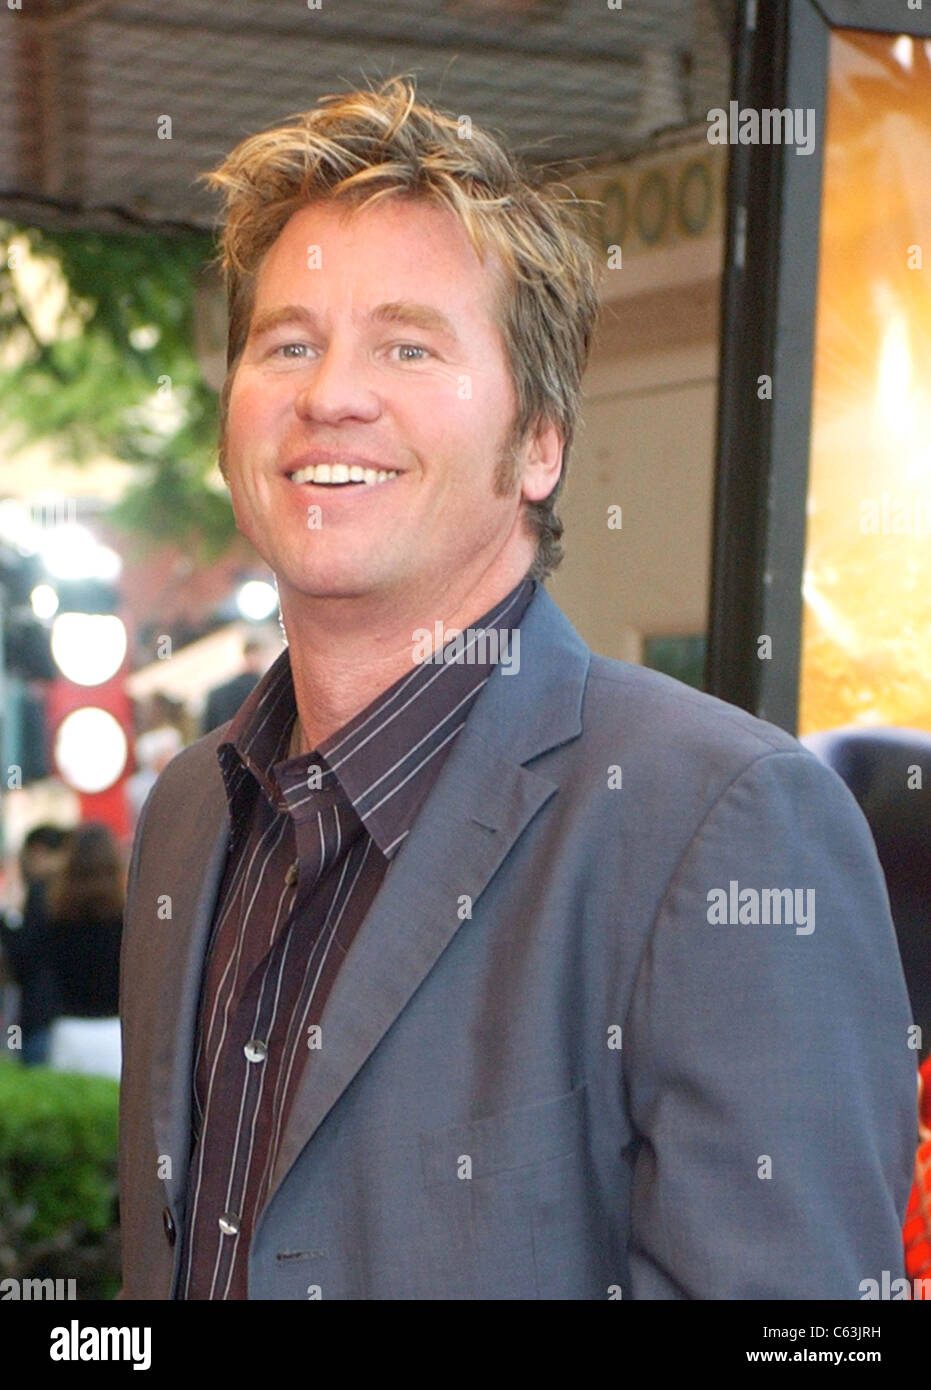 Val Kilmer at the premiere of SPIDER-MAN 2, Los Angeles, Calif,  June 22, 2004. (John Hayes/Everett Collection) - Stock Image